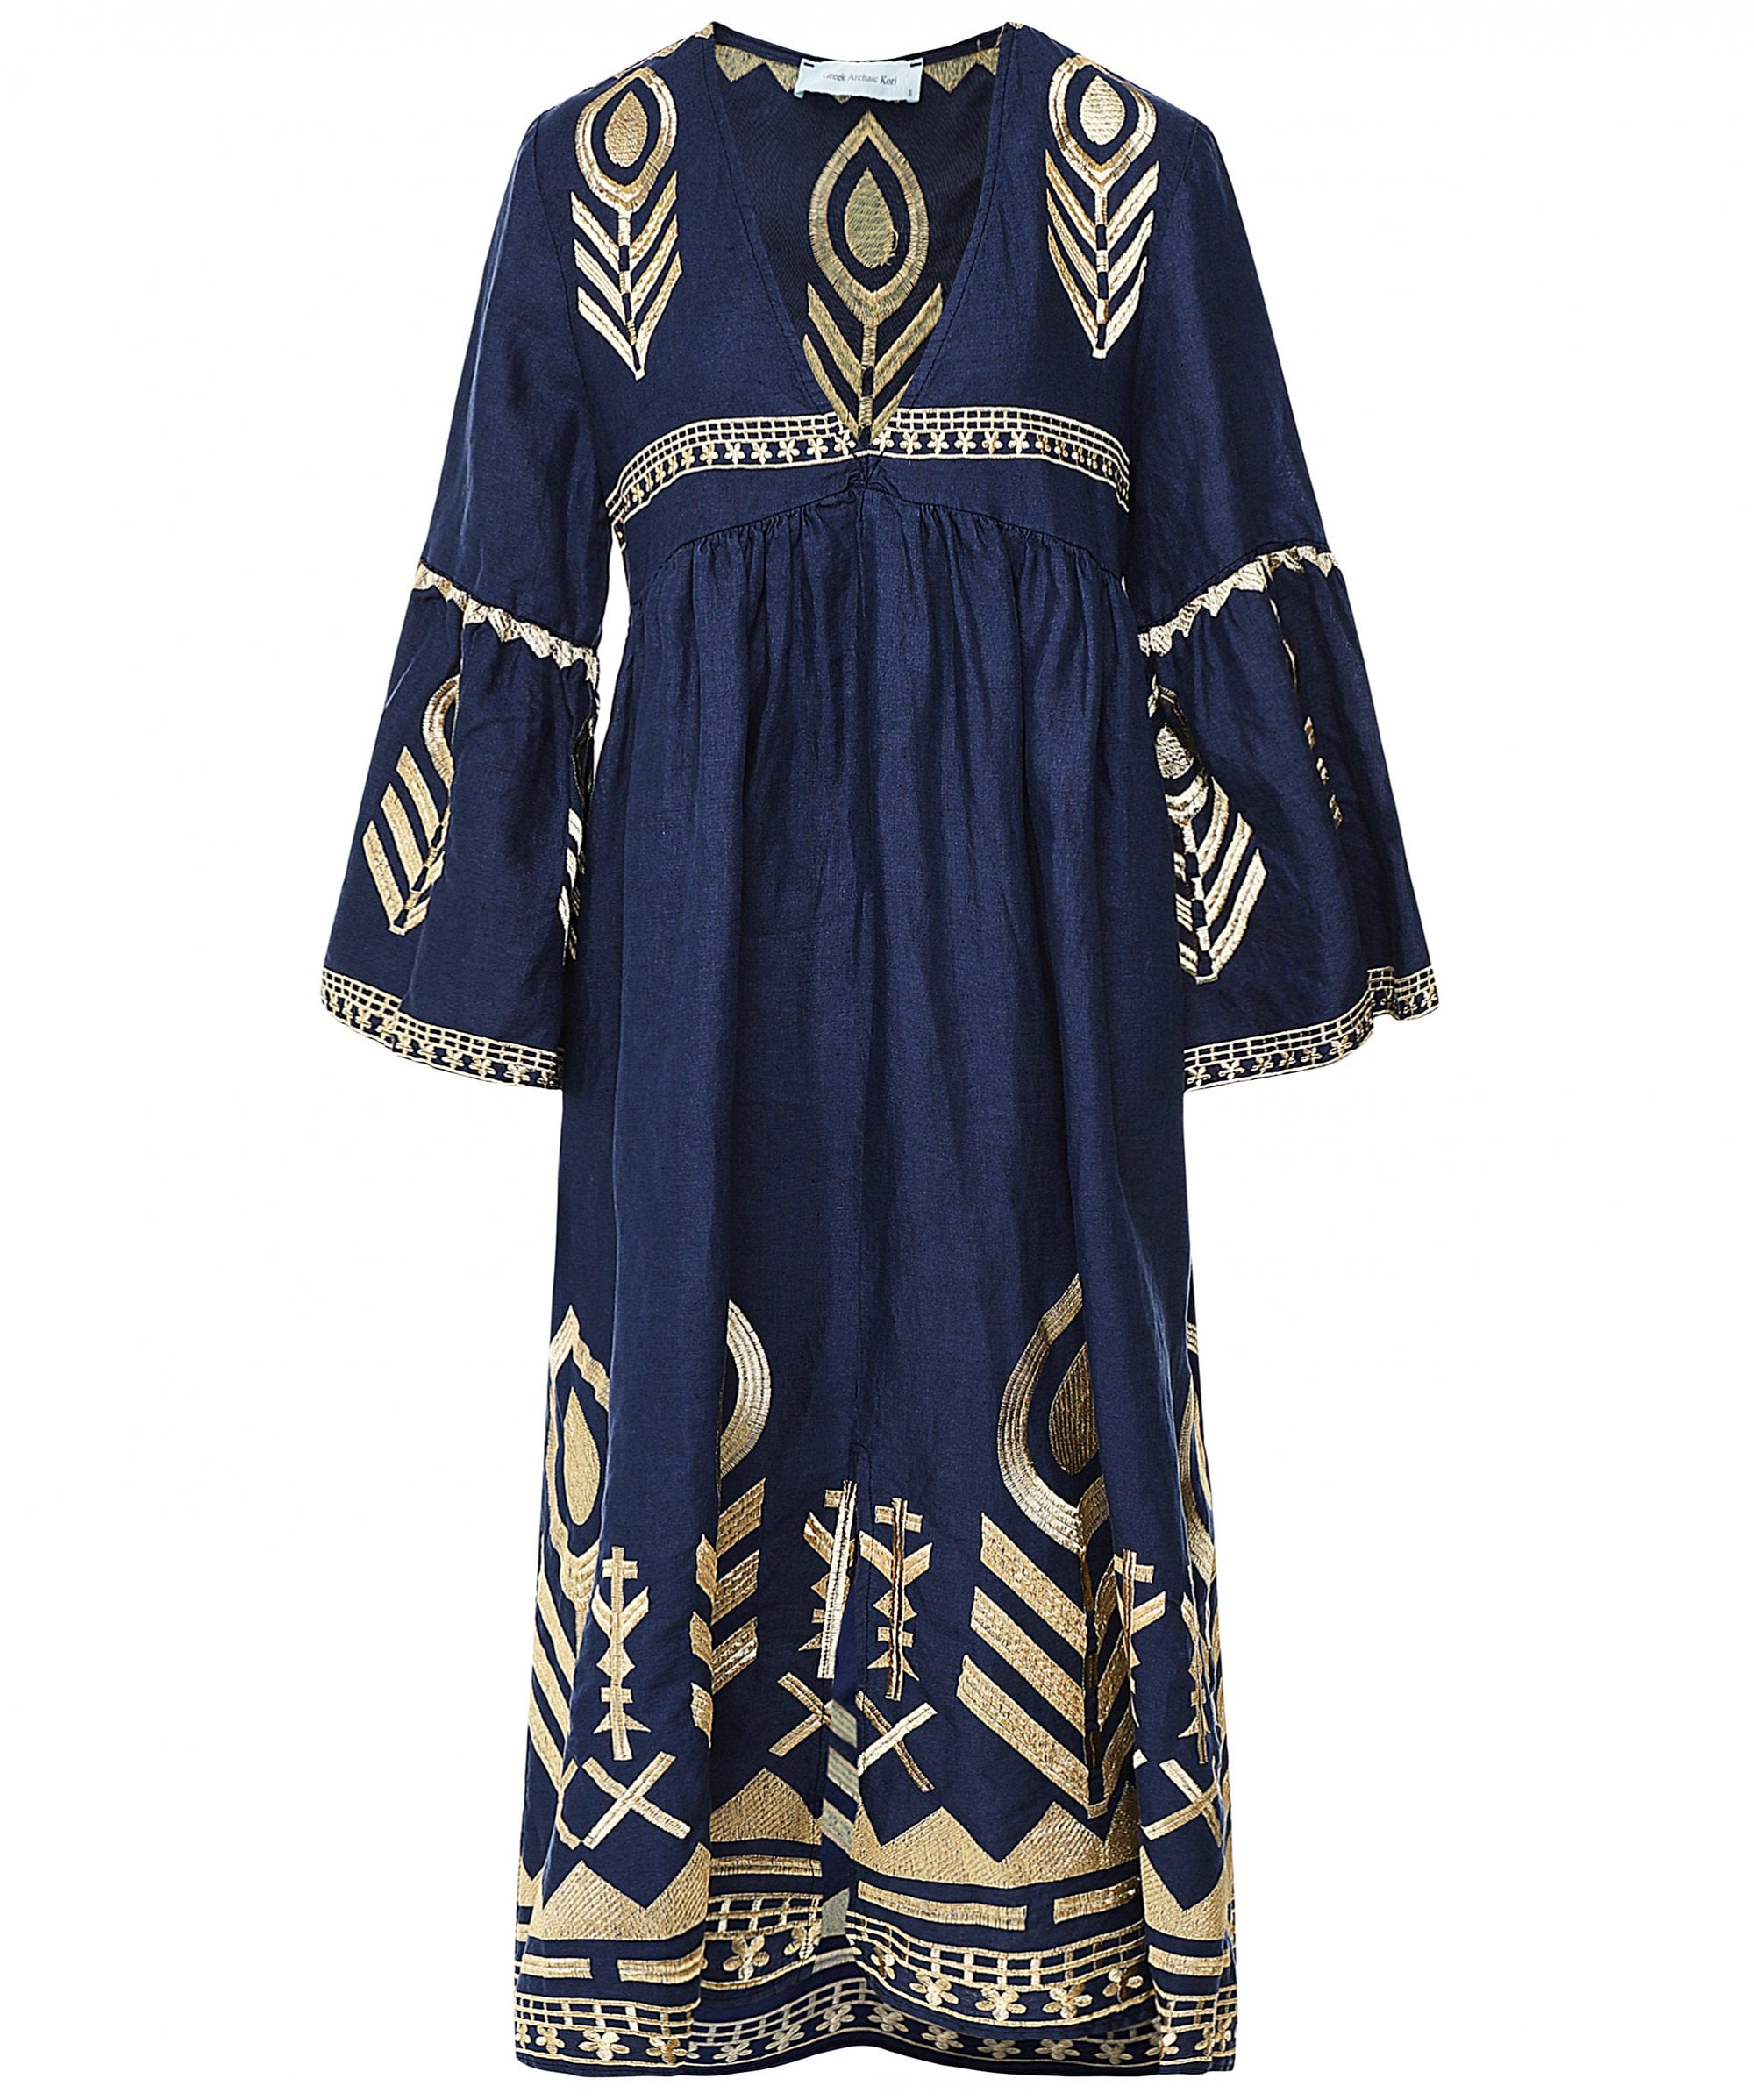 This is an image of a navy blue midi dress with embroidered details and bell sleeves